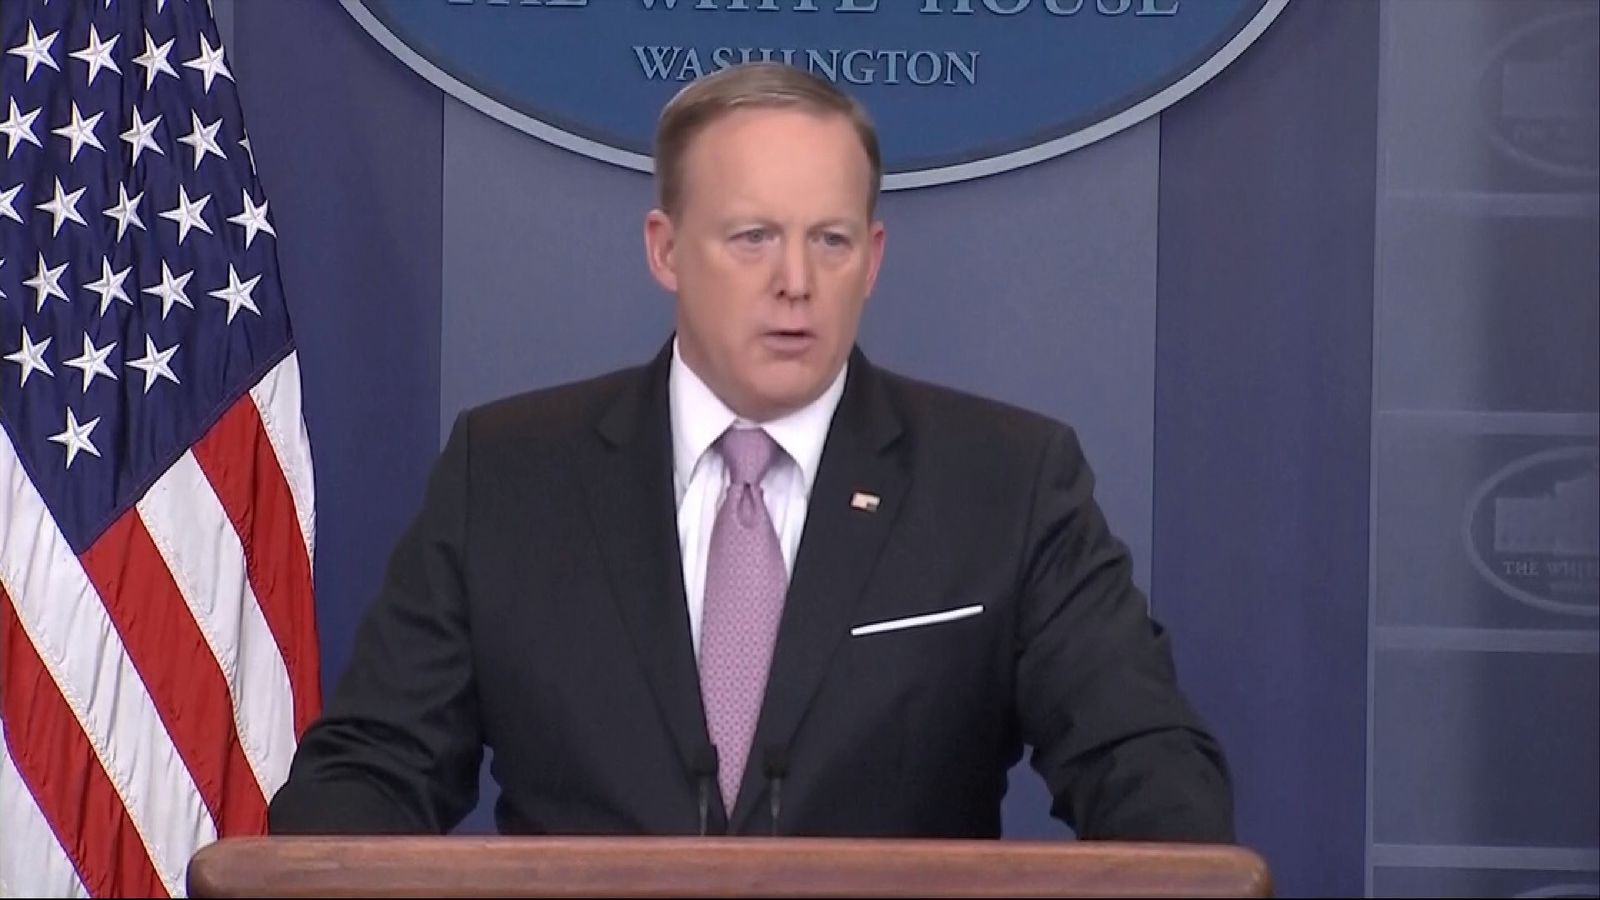 Sean Spicer wears his US flag pin upside-down